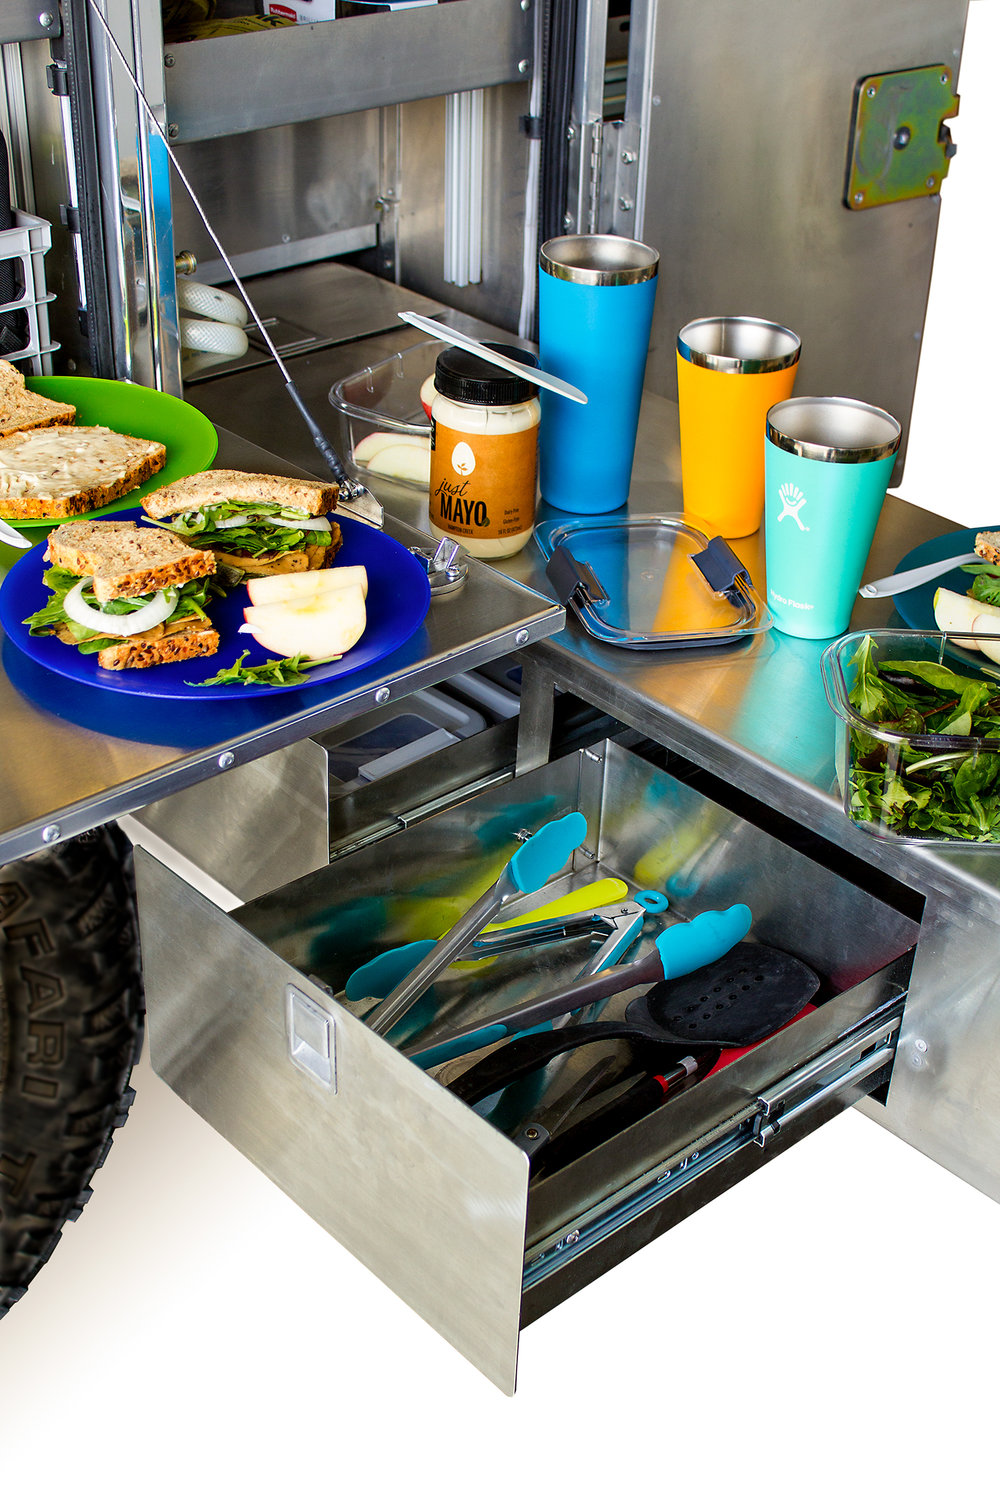 TWO LARGE STAINLESS STEEL UTENSIL DRAWERS